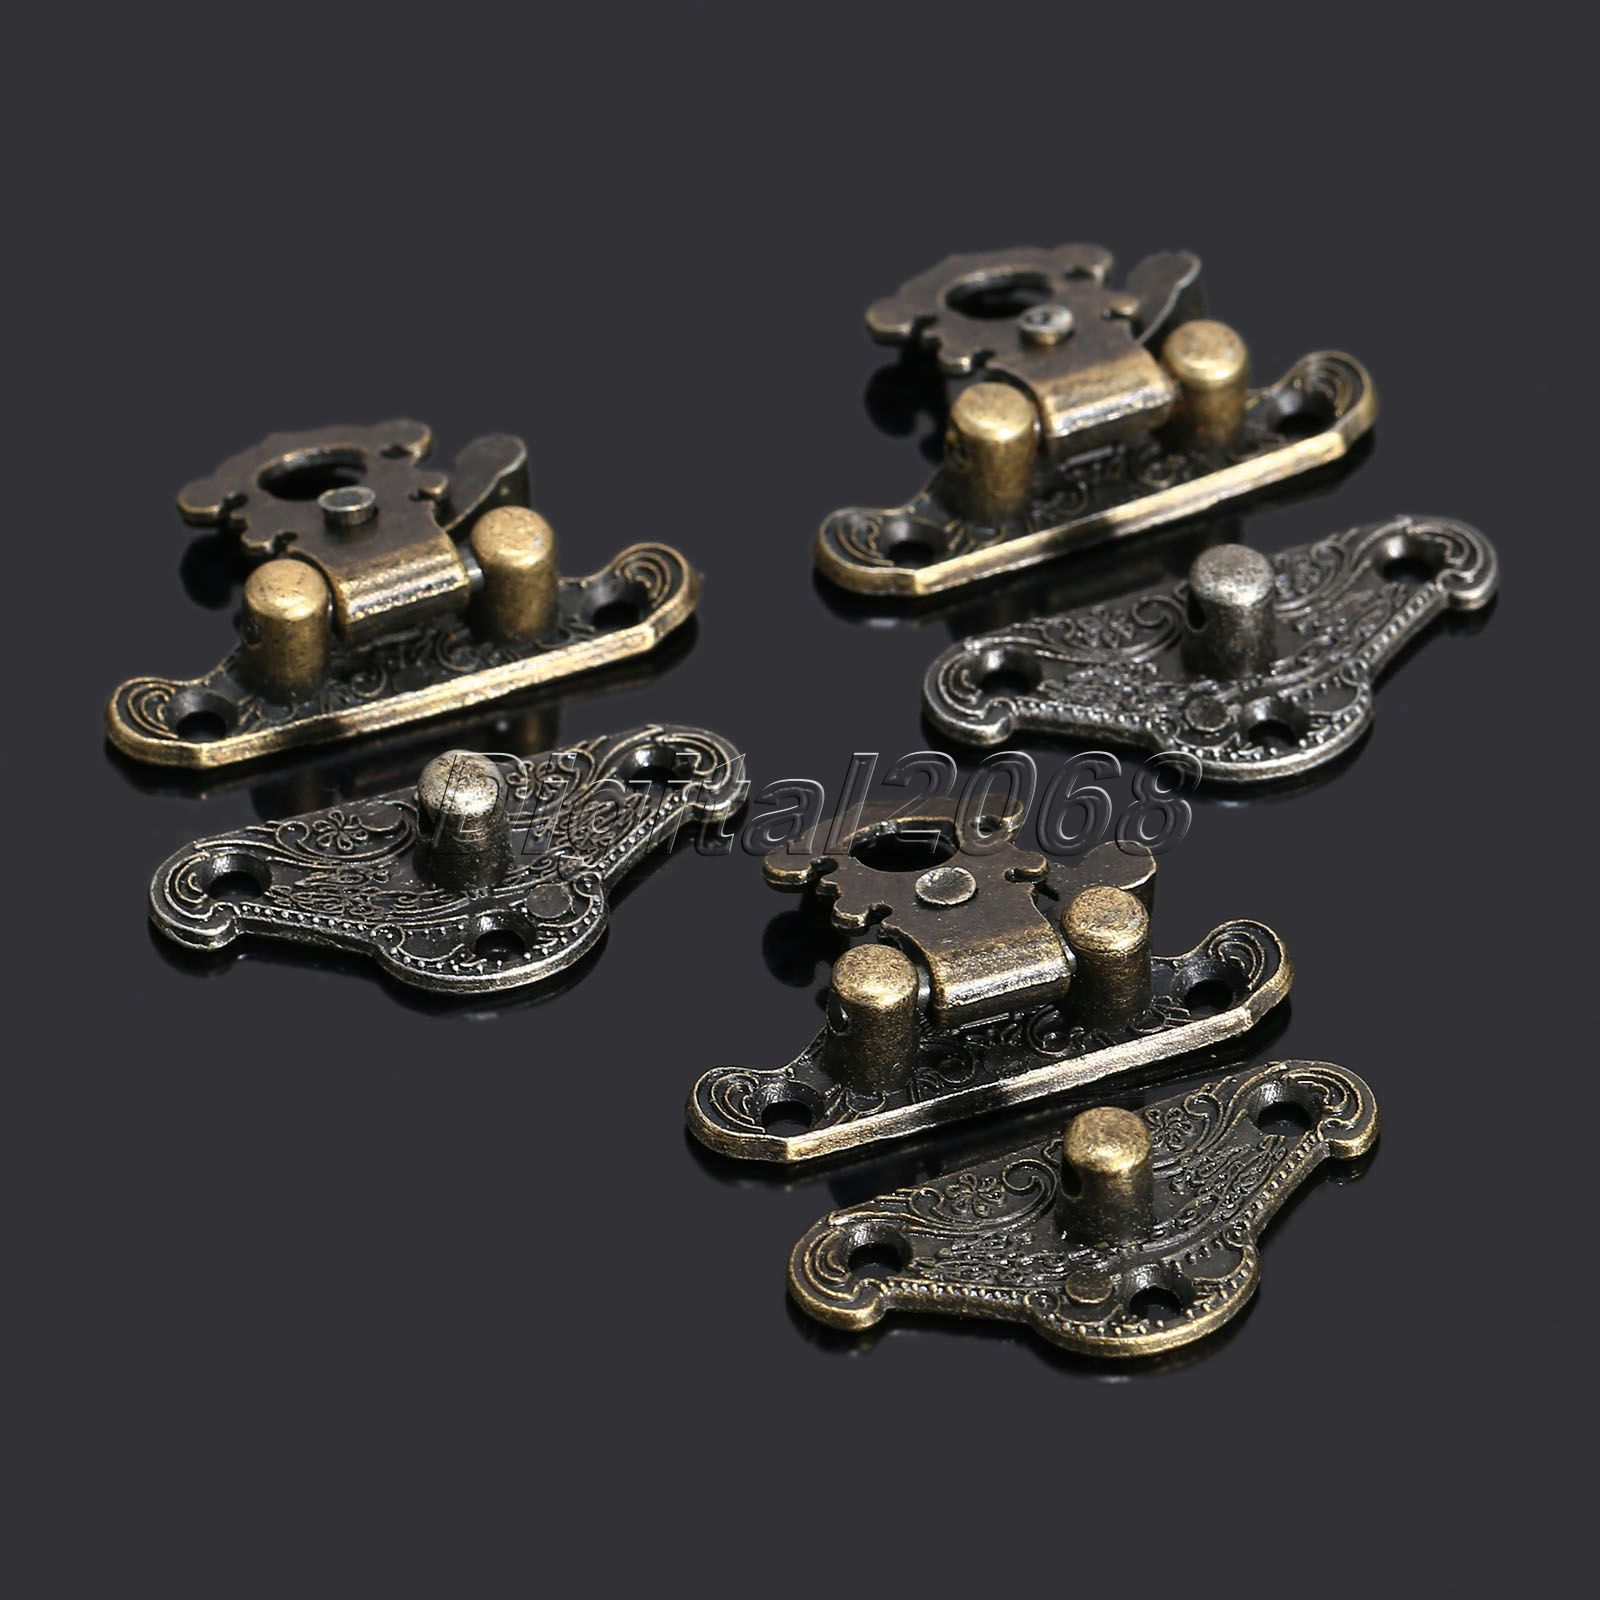 12pcs antique latches catches hasps clasp wooden buckles for Decor jewelry